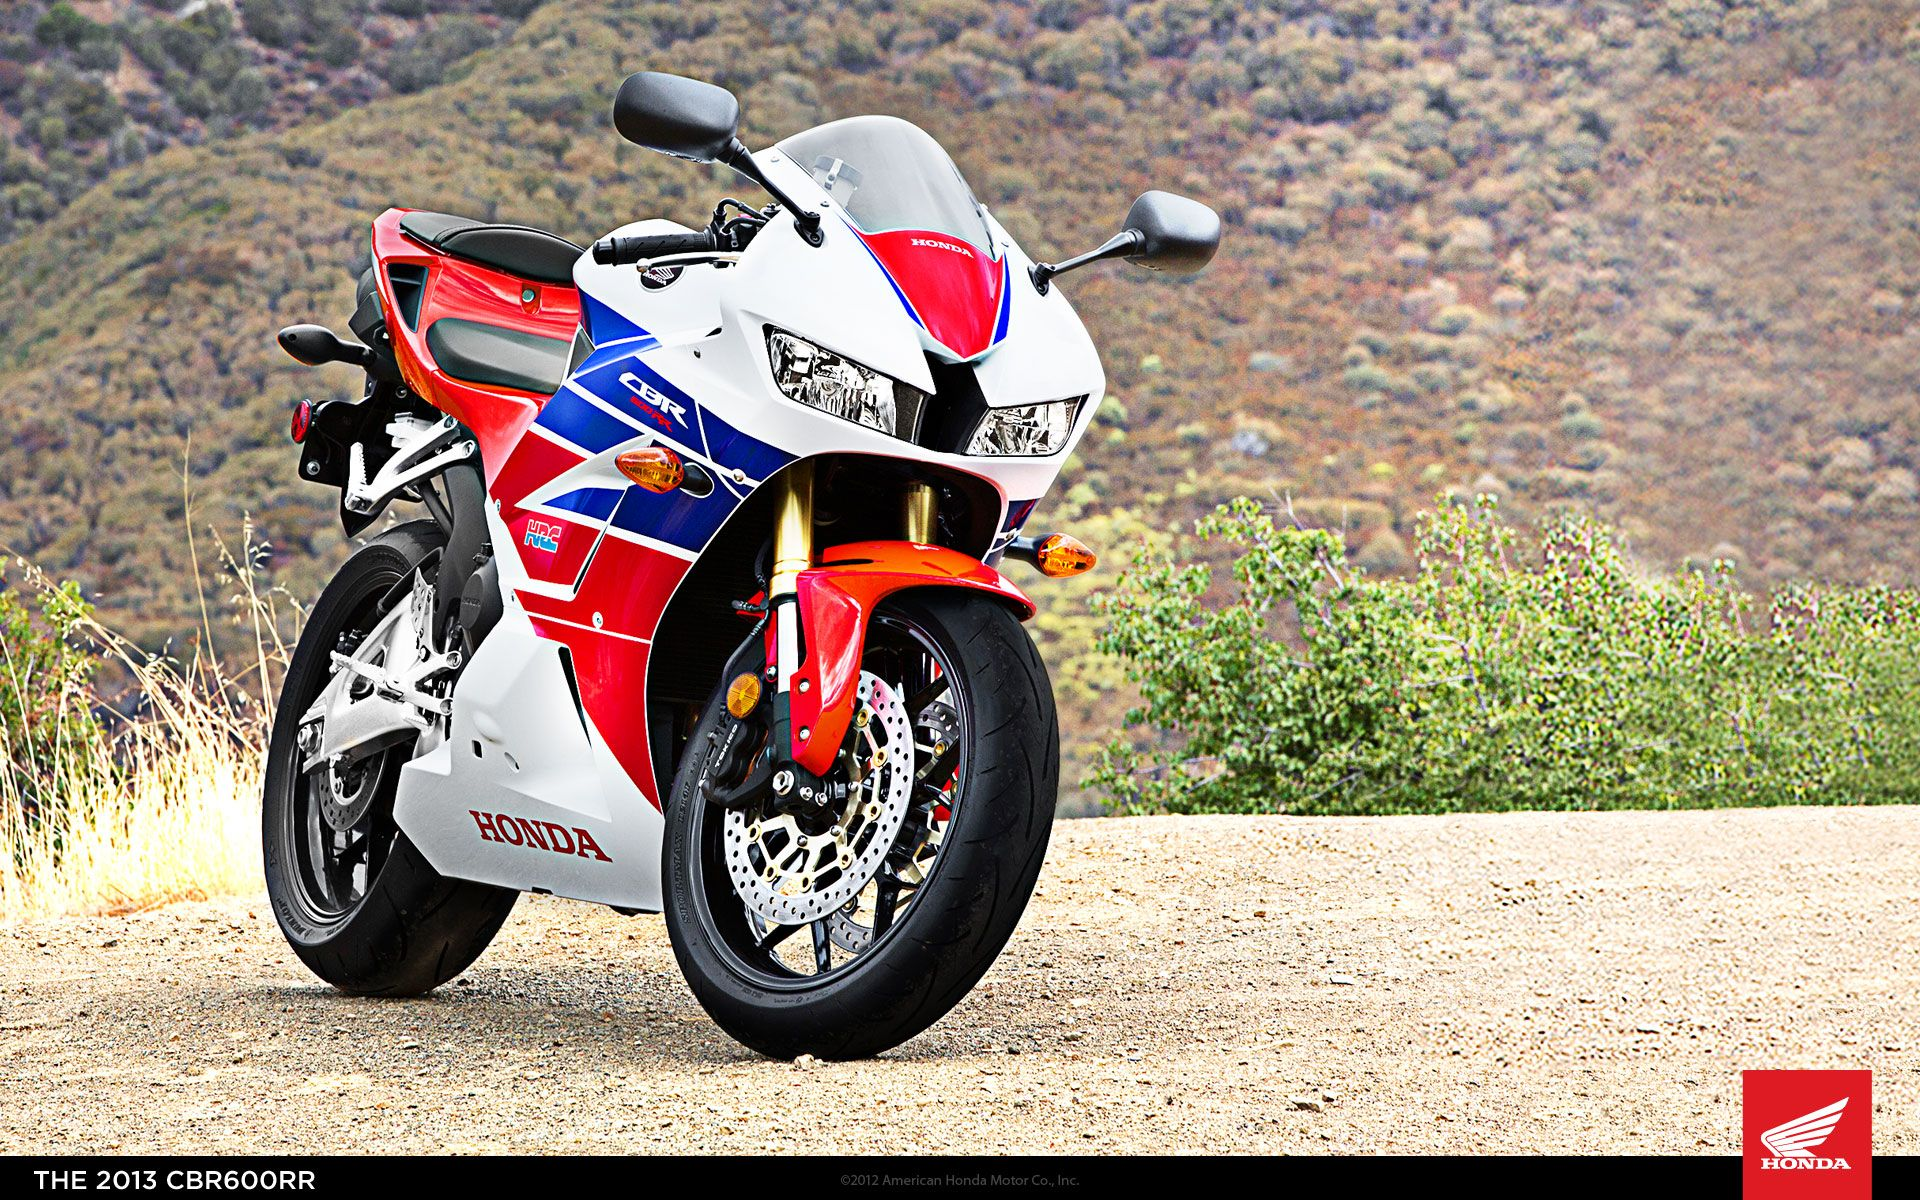 Honda Repsol Wallpaper Motorcycle: Honda CBR 600 2013 HD Wallpaper